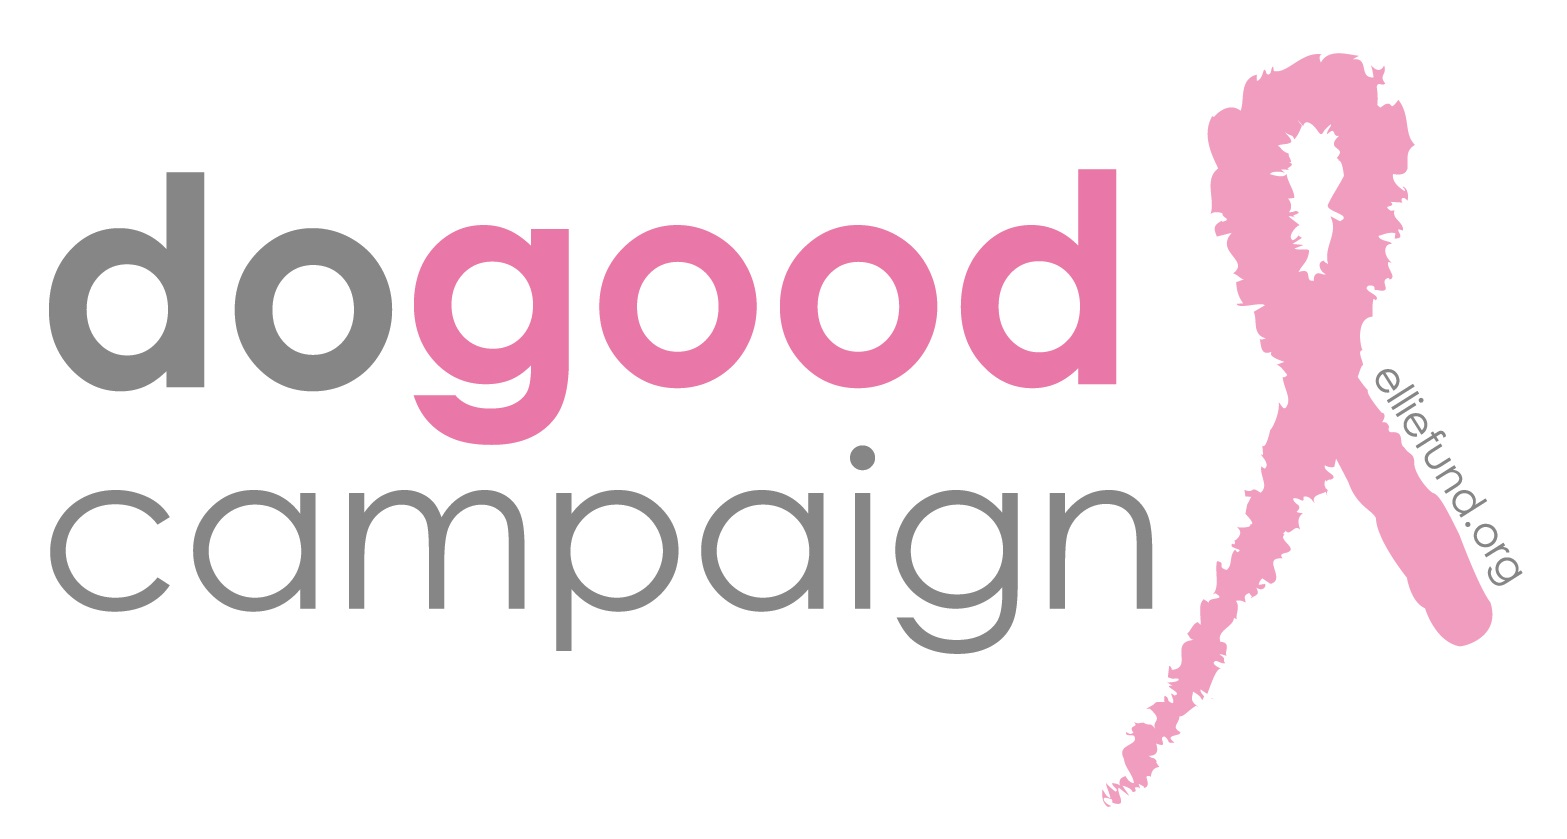 Cape Clogs is a Do Good Campaign Sponsor for Breast Cancer Awareness